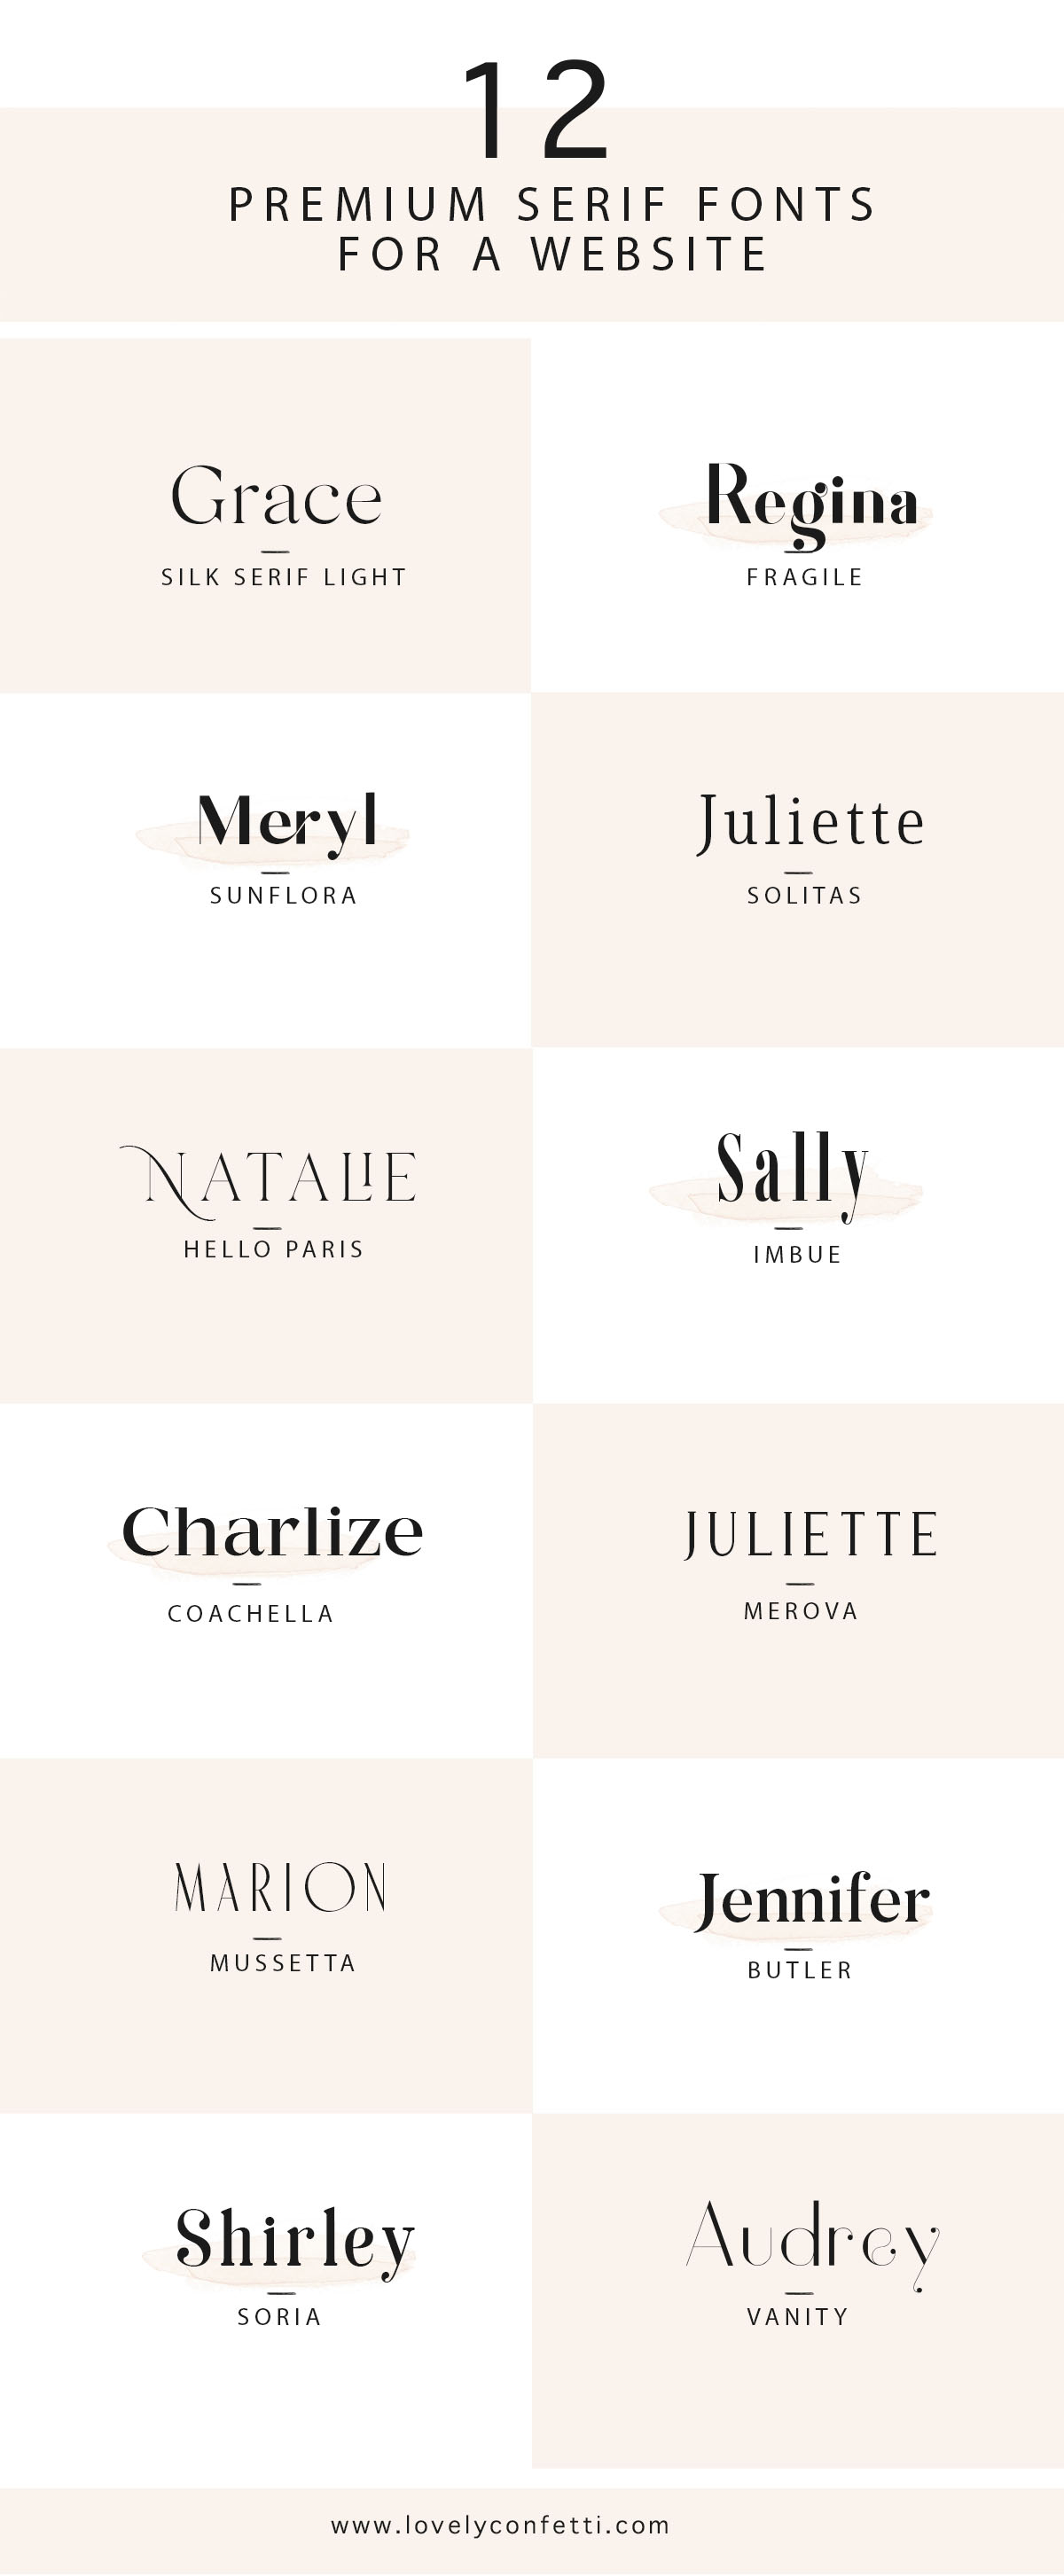 12 premium serif fonts for a website